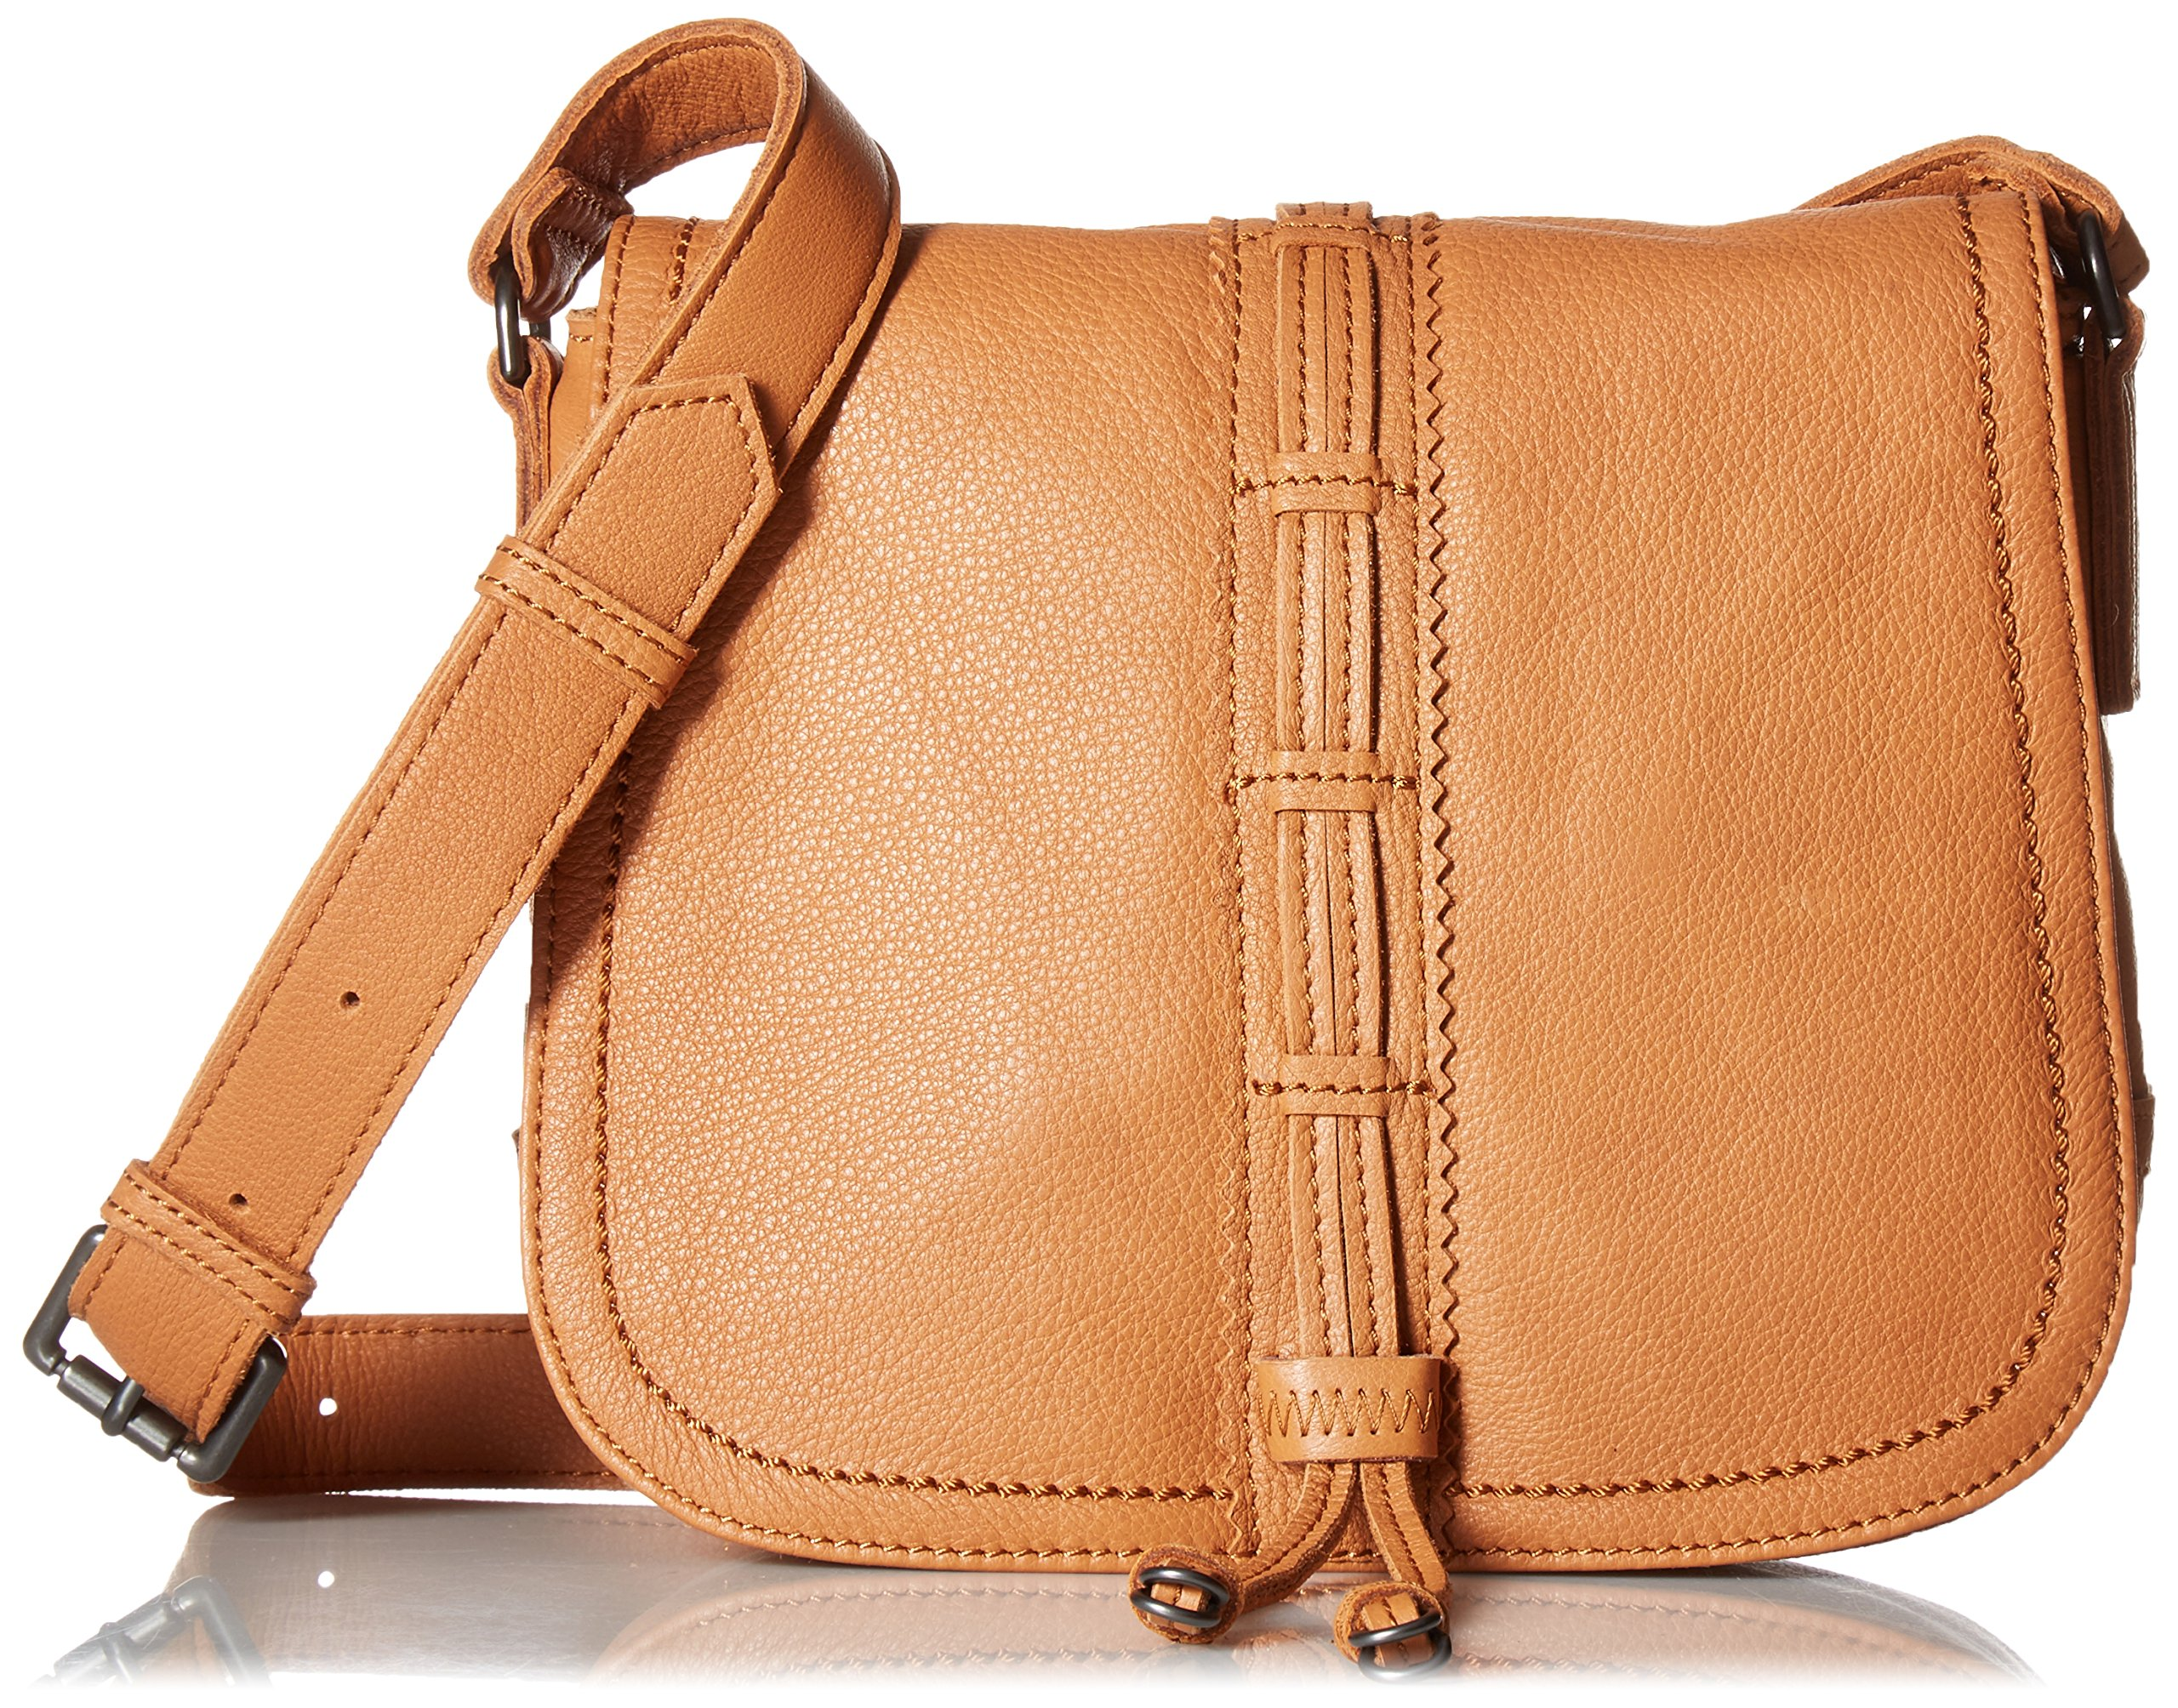 Liebeskind Berlin Women's Huntsville Leather Saddle Bag, Cognac